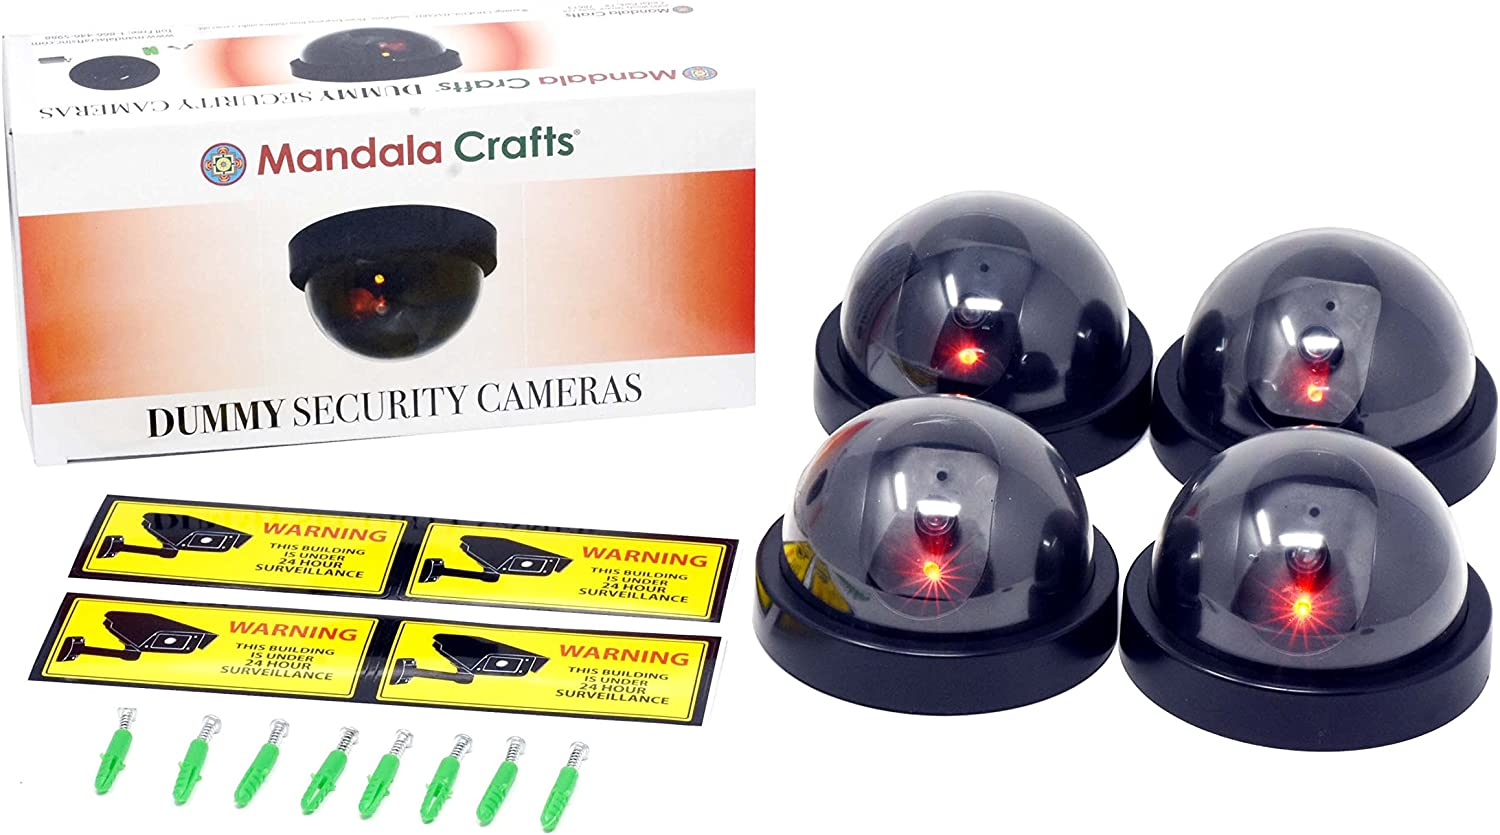 Mandala Crafts 4 Dummy Fake Security Dome Cameras with Flashing Red LED Light CCTV Alert Warning Sticker Decal Signs